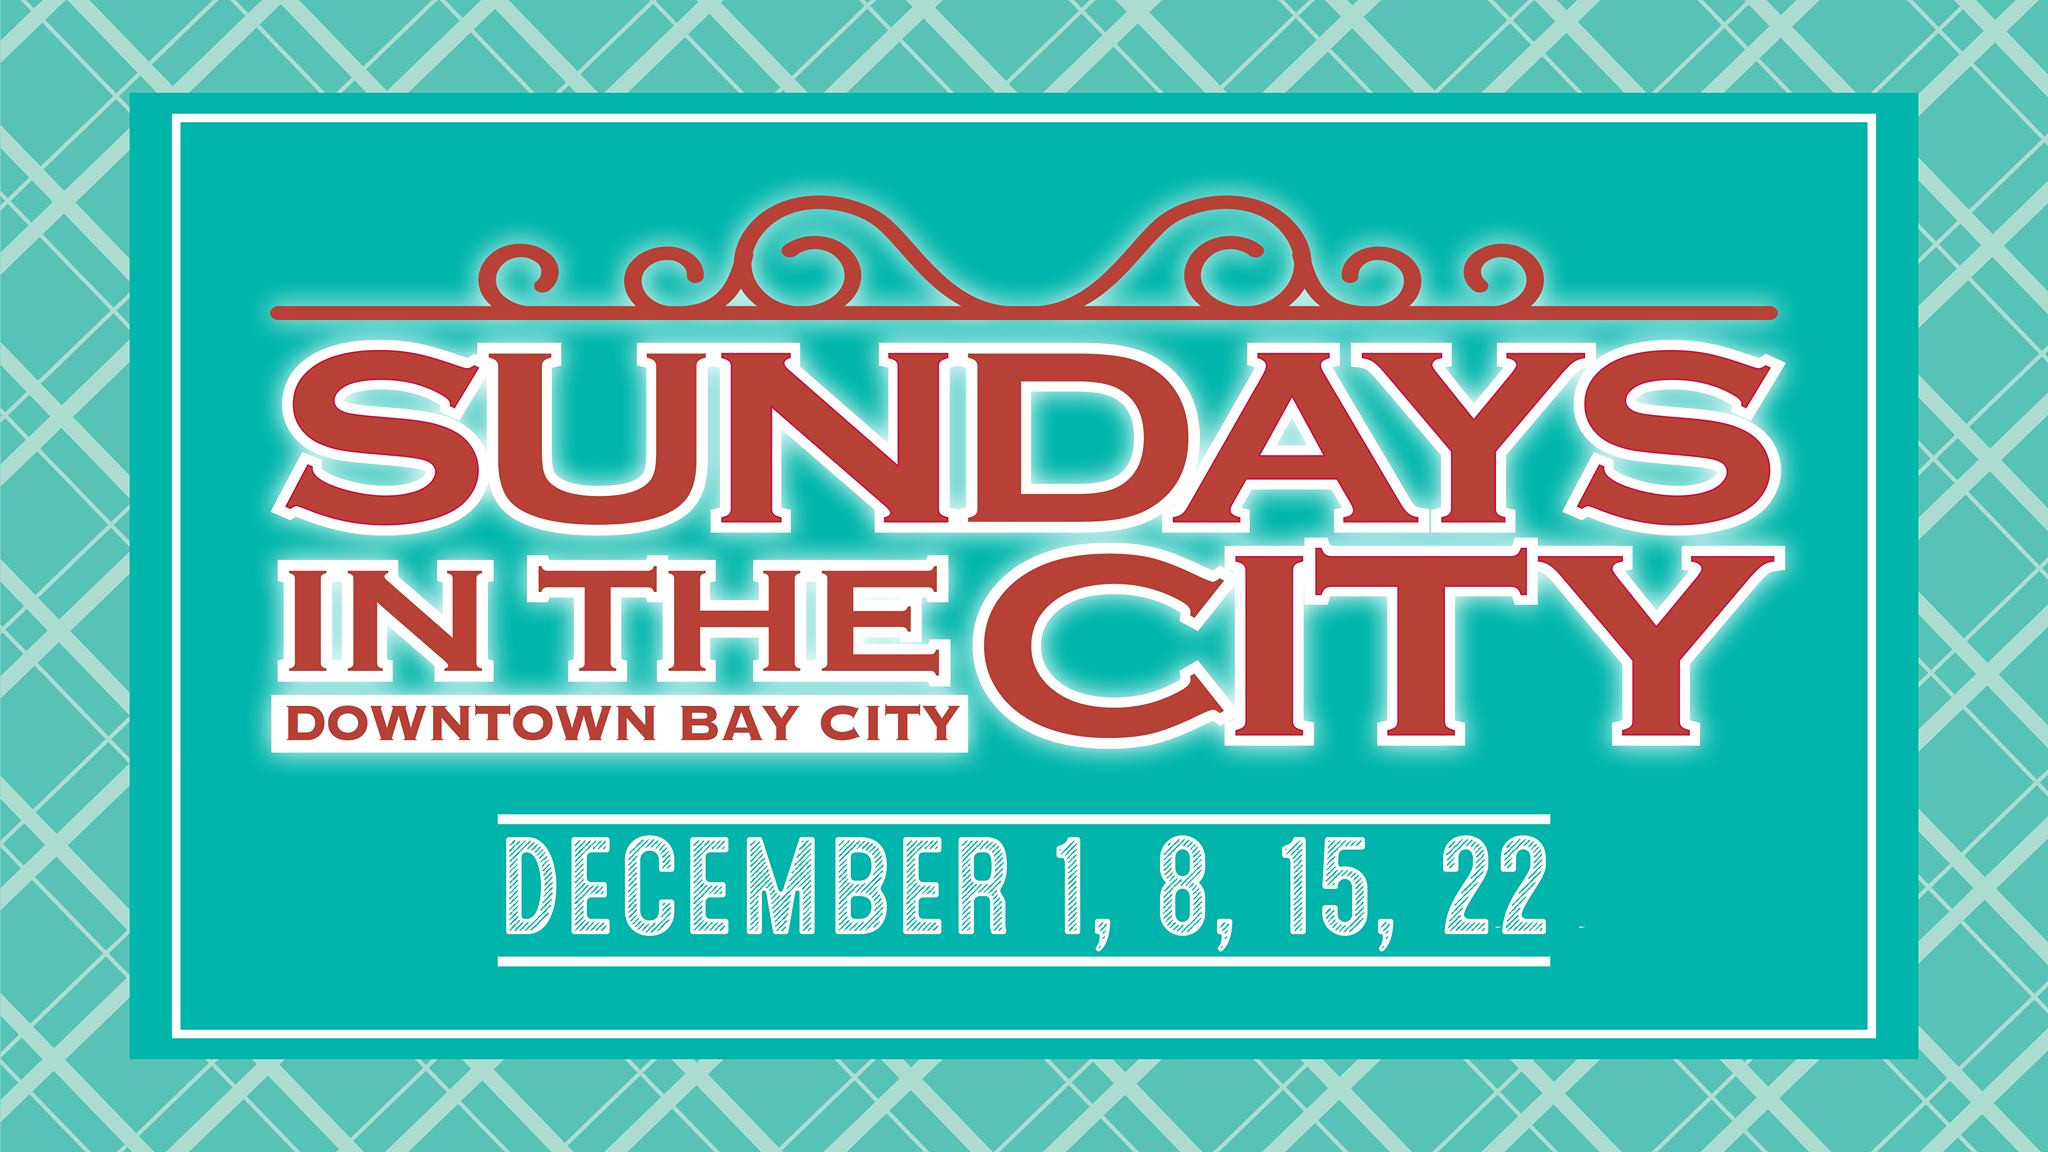 Downtown Events Downtown Bay City 10:30 am — 12:30 am. downtown events downtown bay city